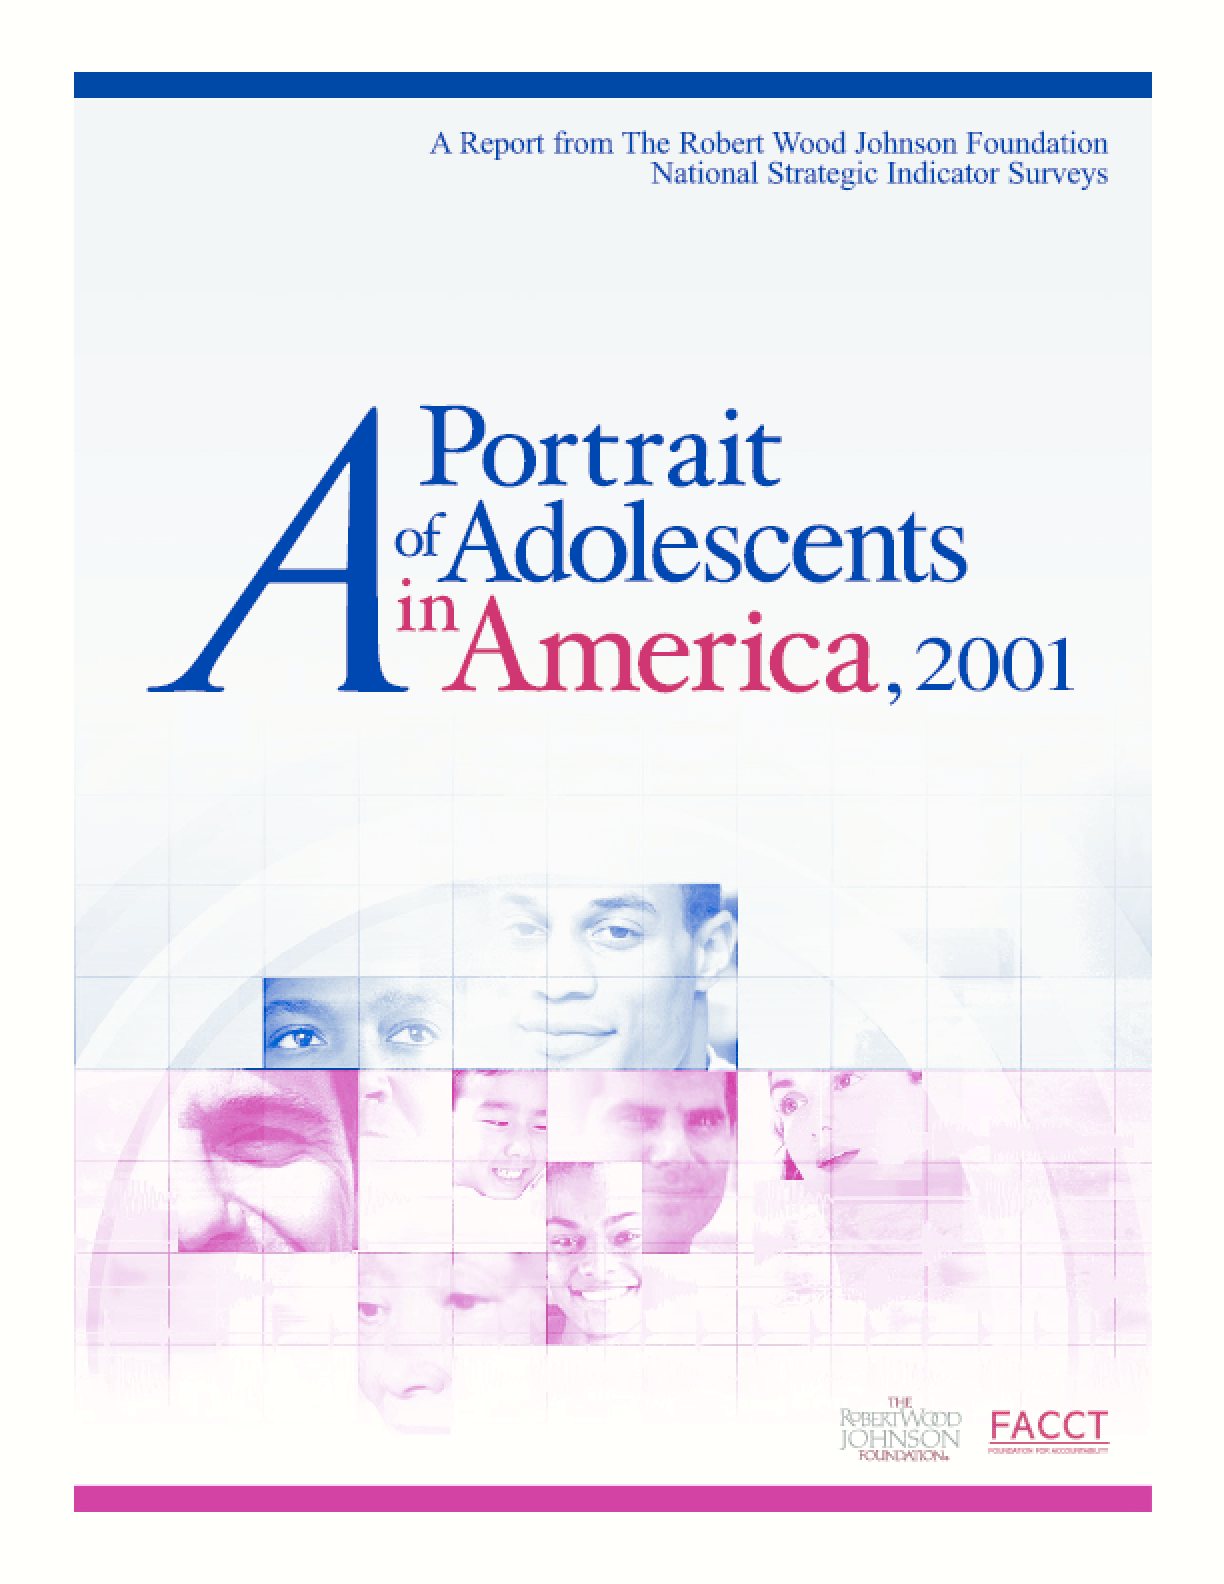 A Portrait of Adolescents in America, 2001